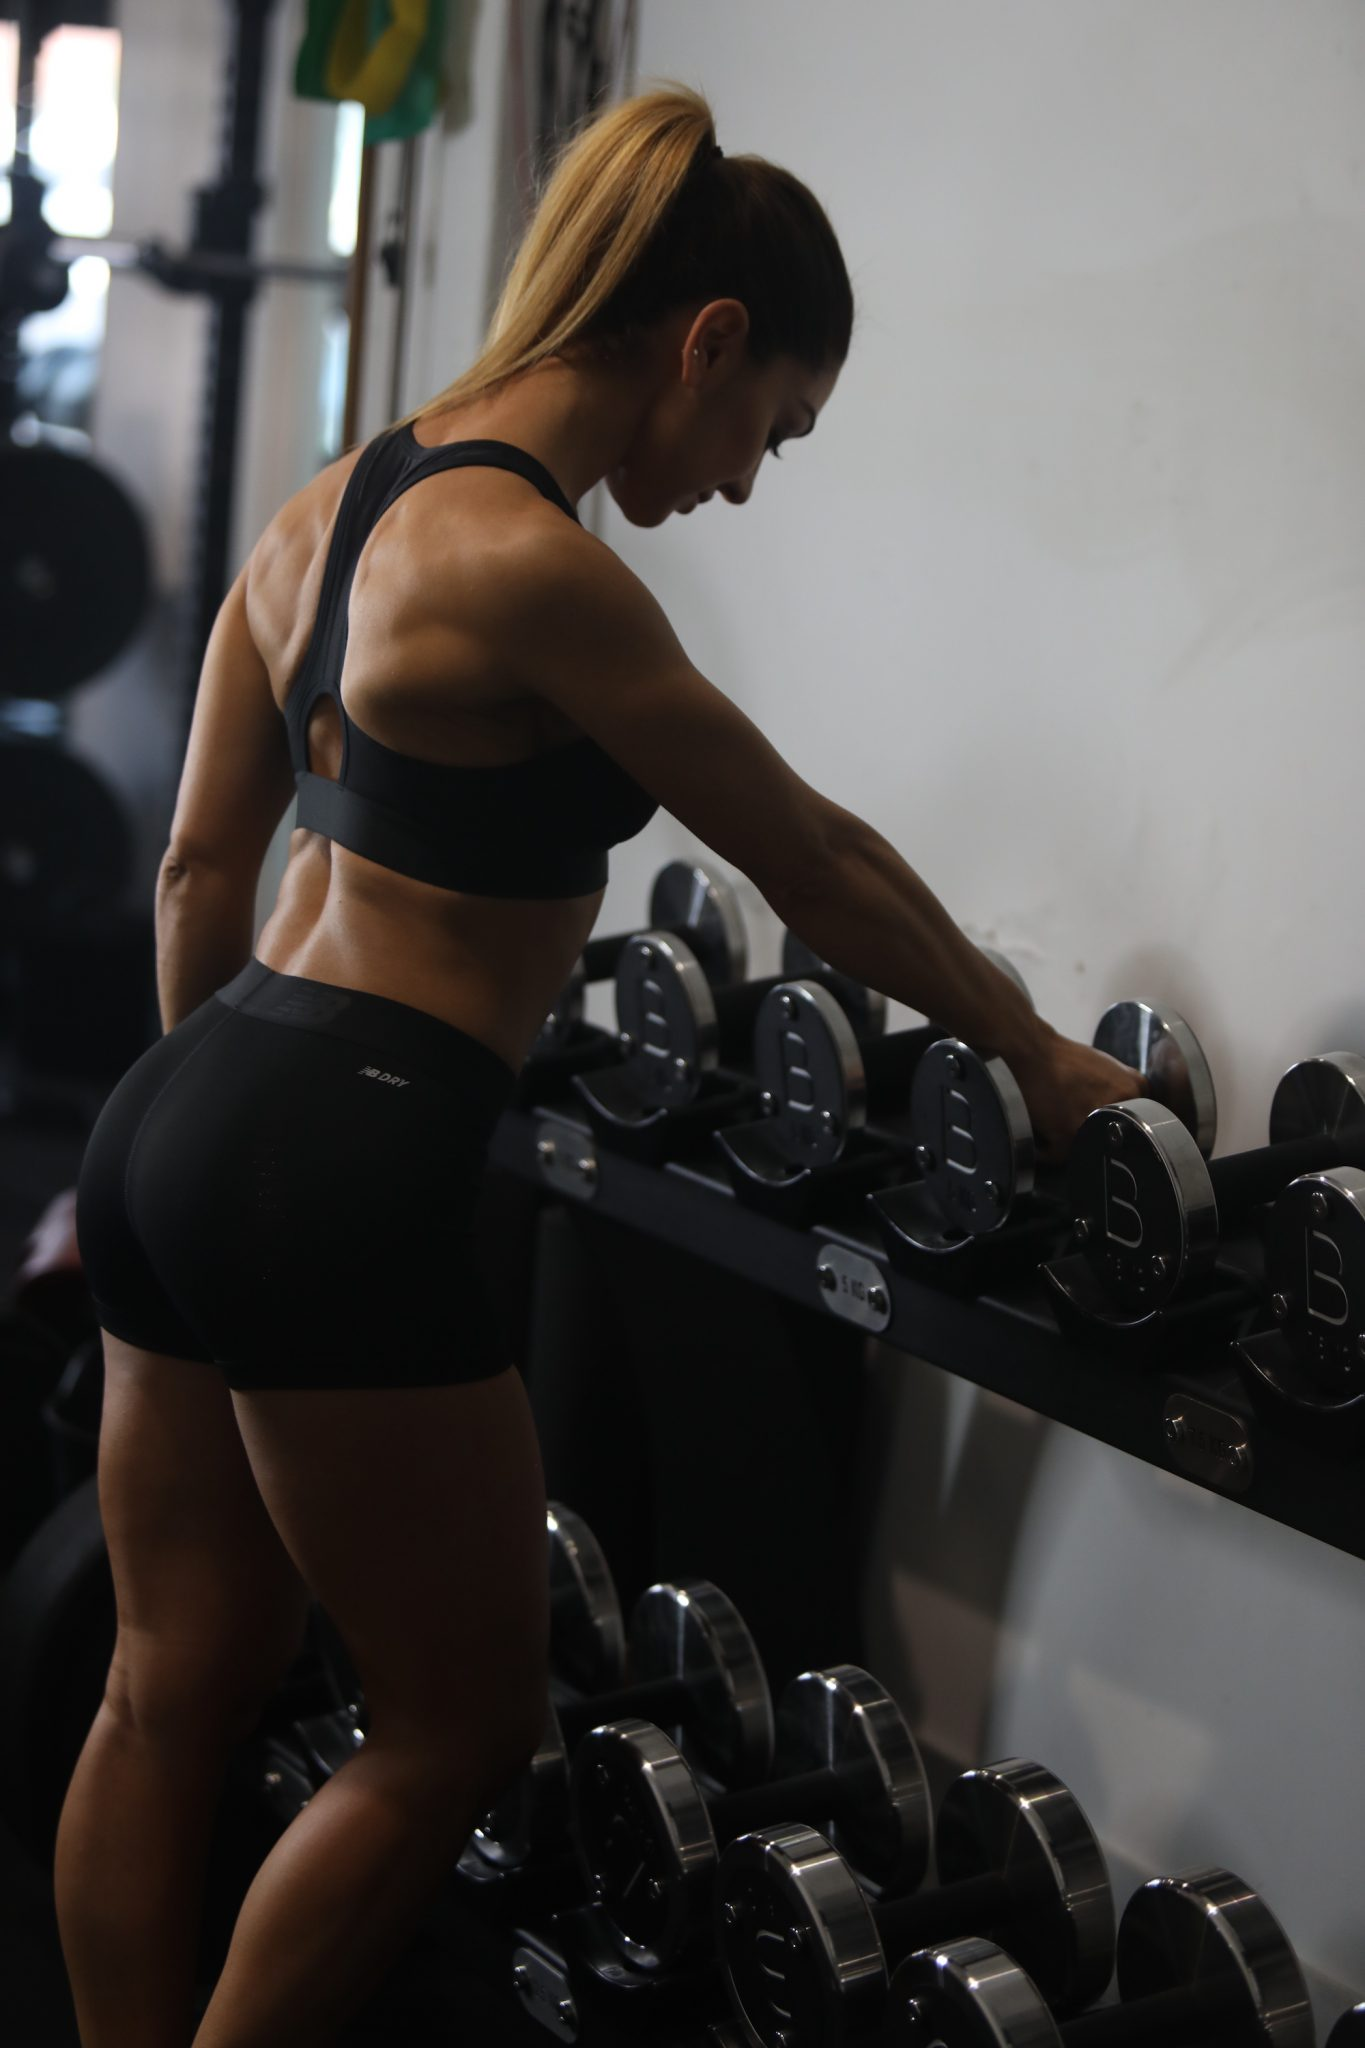 Weights for Women Part 3: Beginners Guide to Strength Training & Equipment